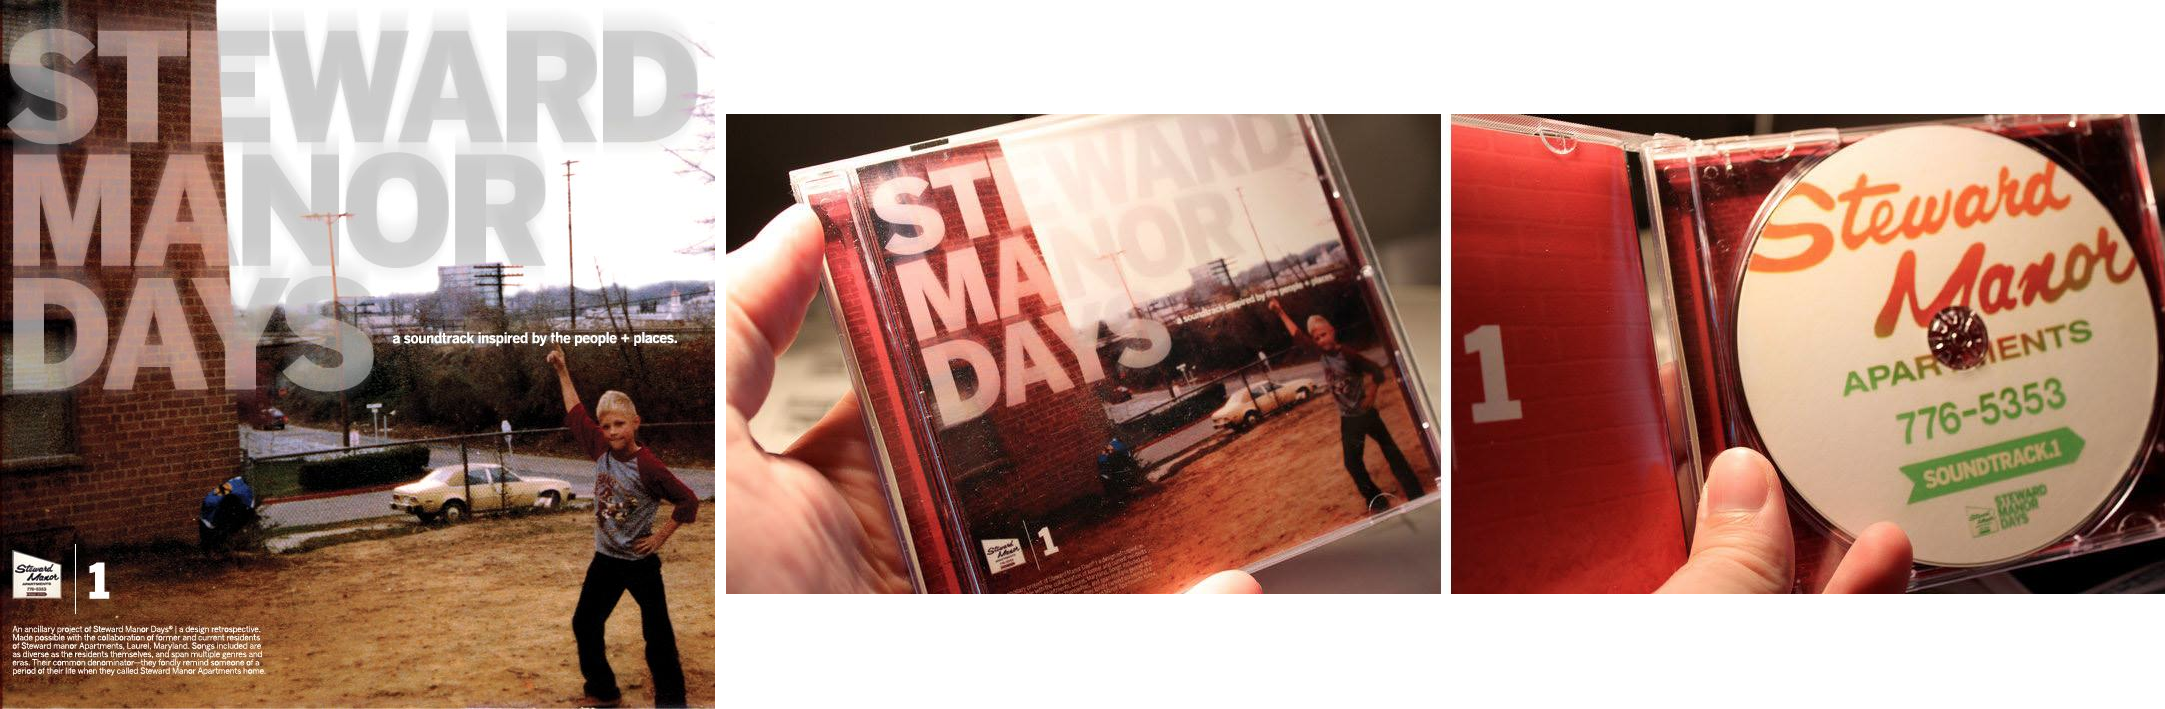 steward_manor_cd_cover